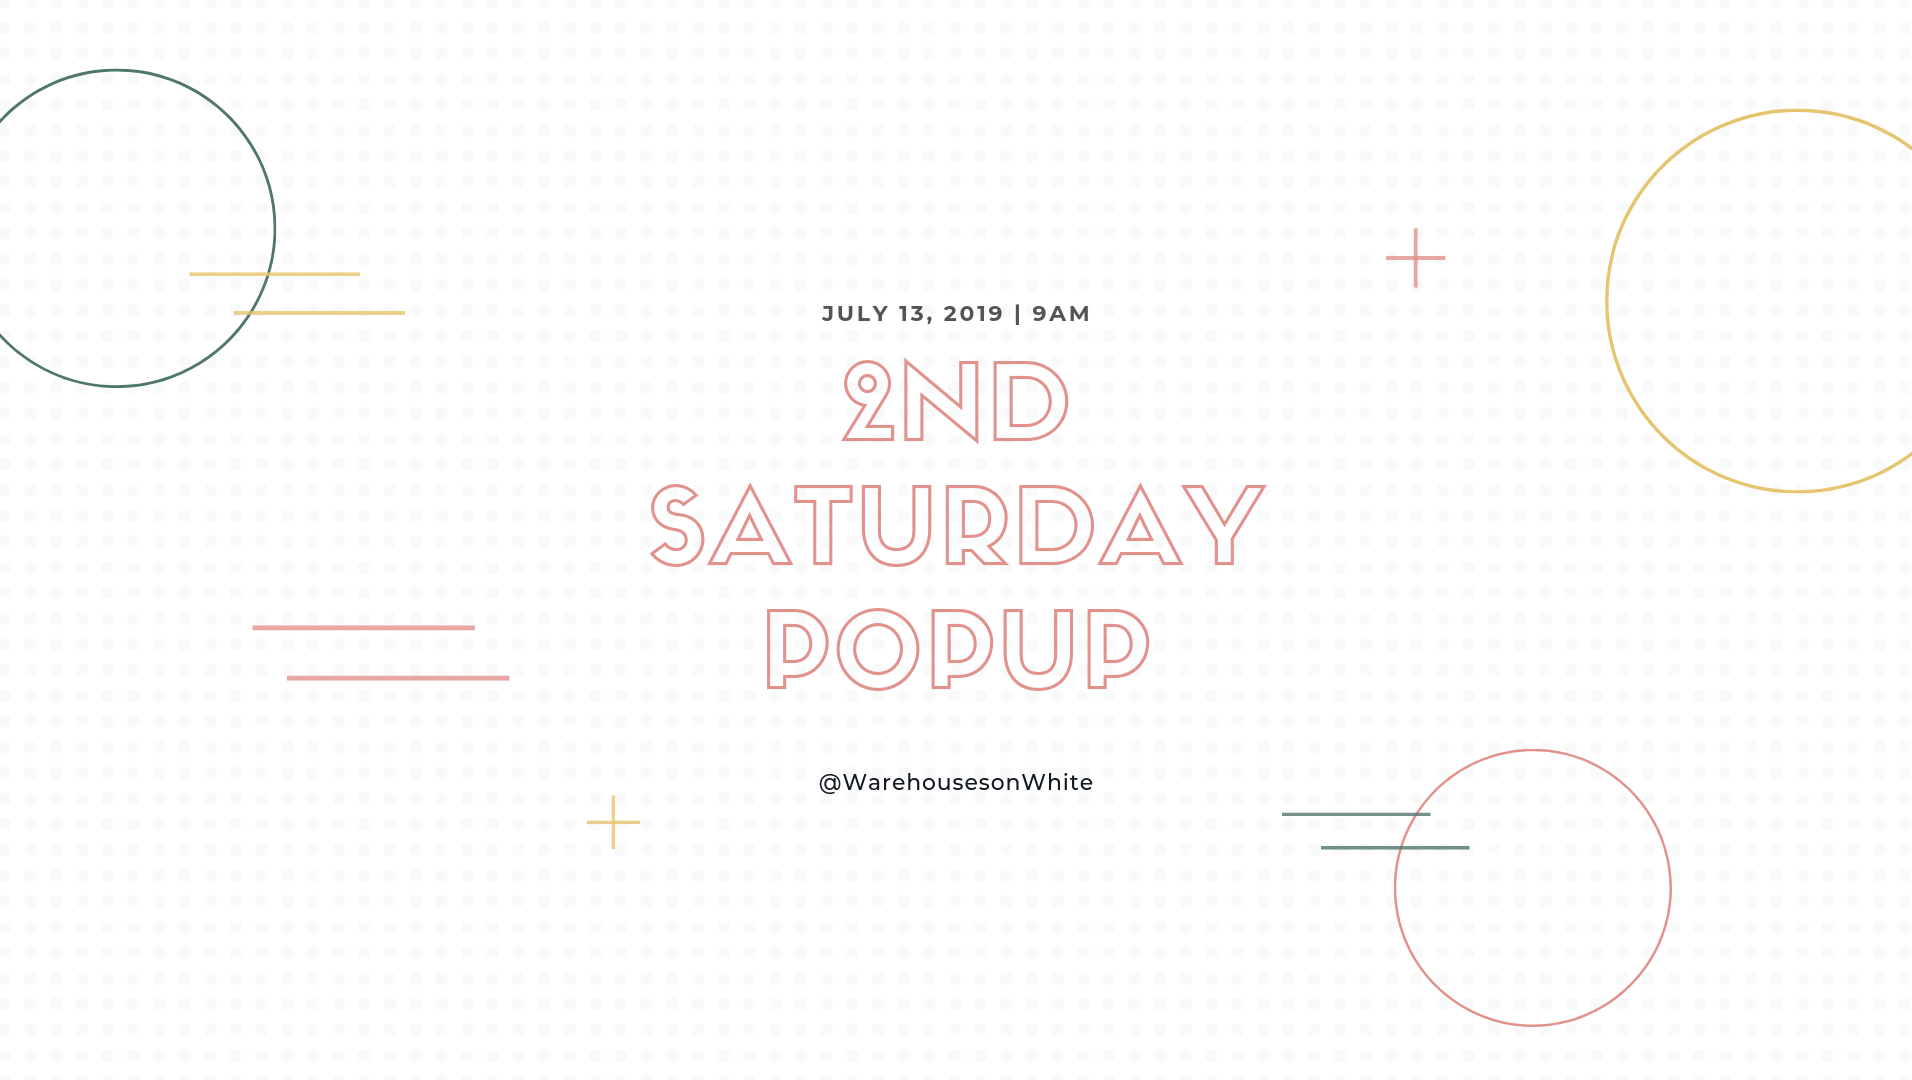 2nd saturday popup